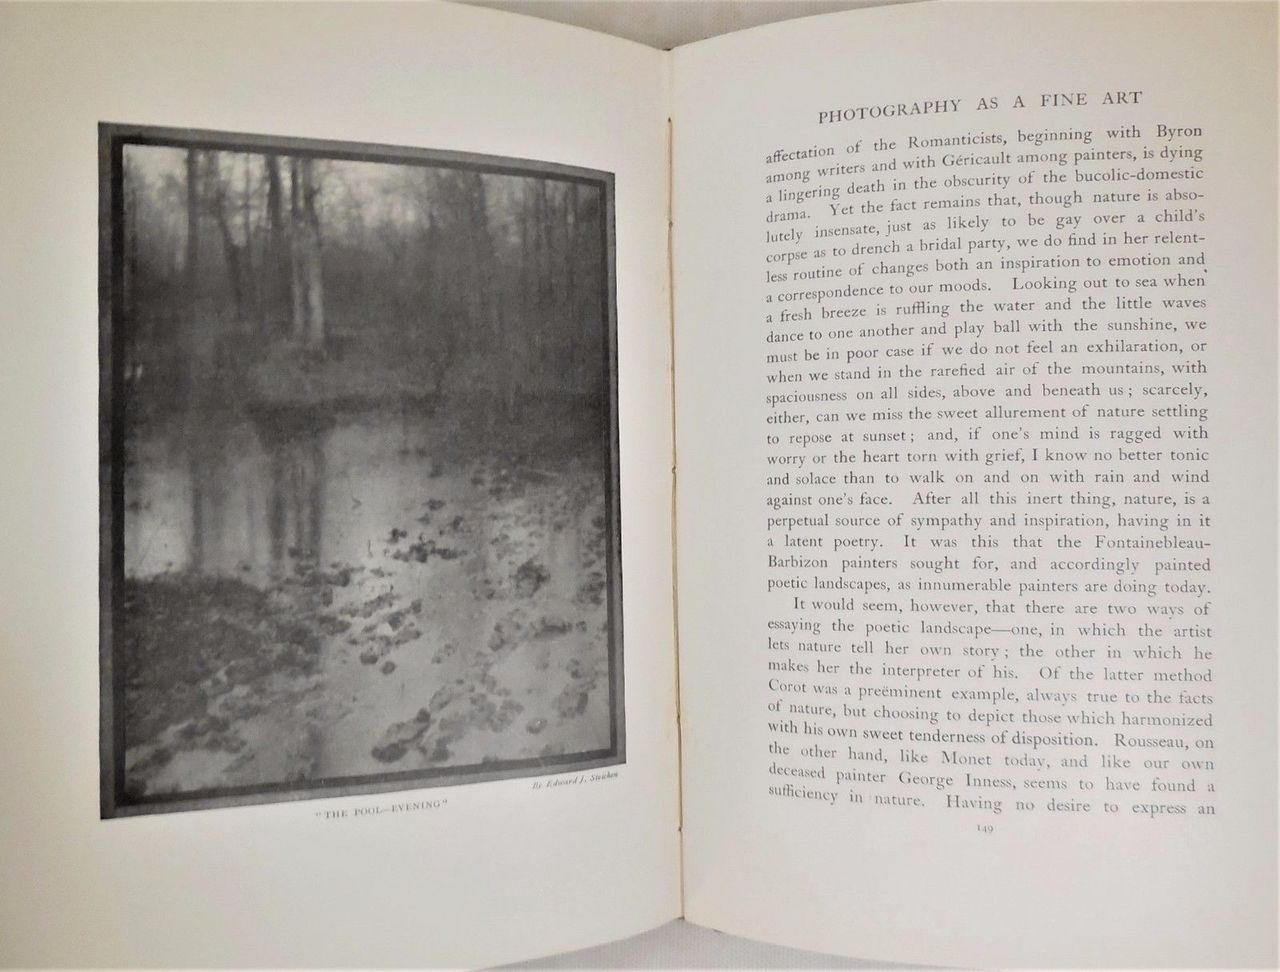 PHOTOGRAPHY AS A FINE ART by Charles H. Caffin - 1901 [1st Ed]